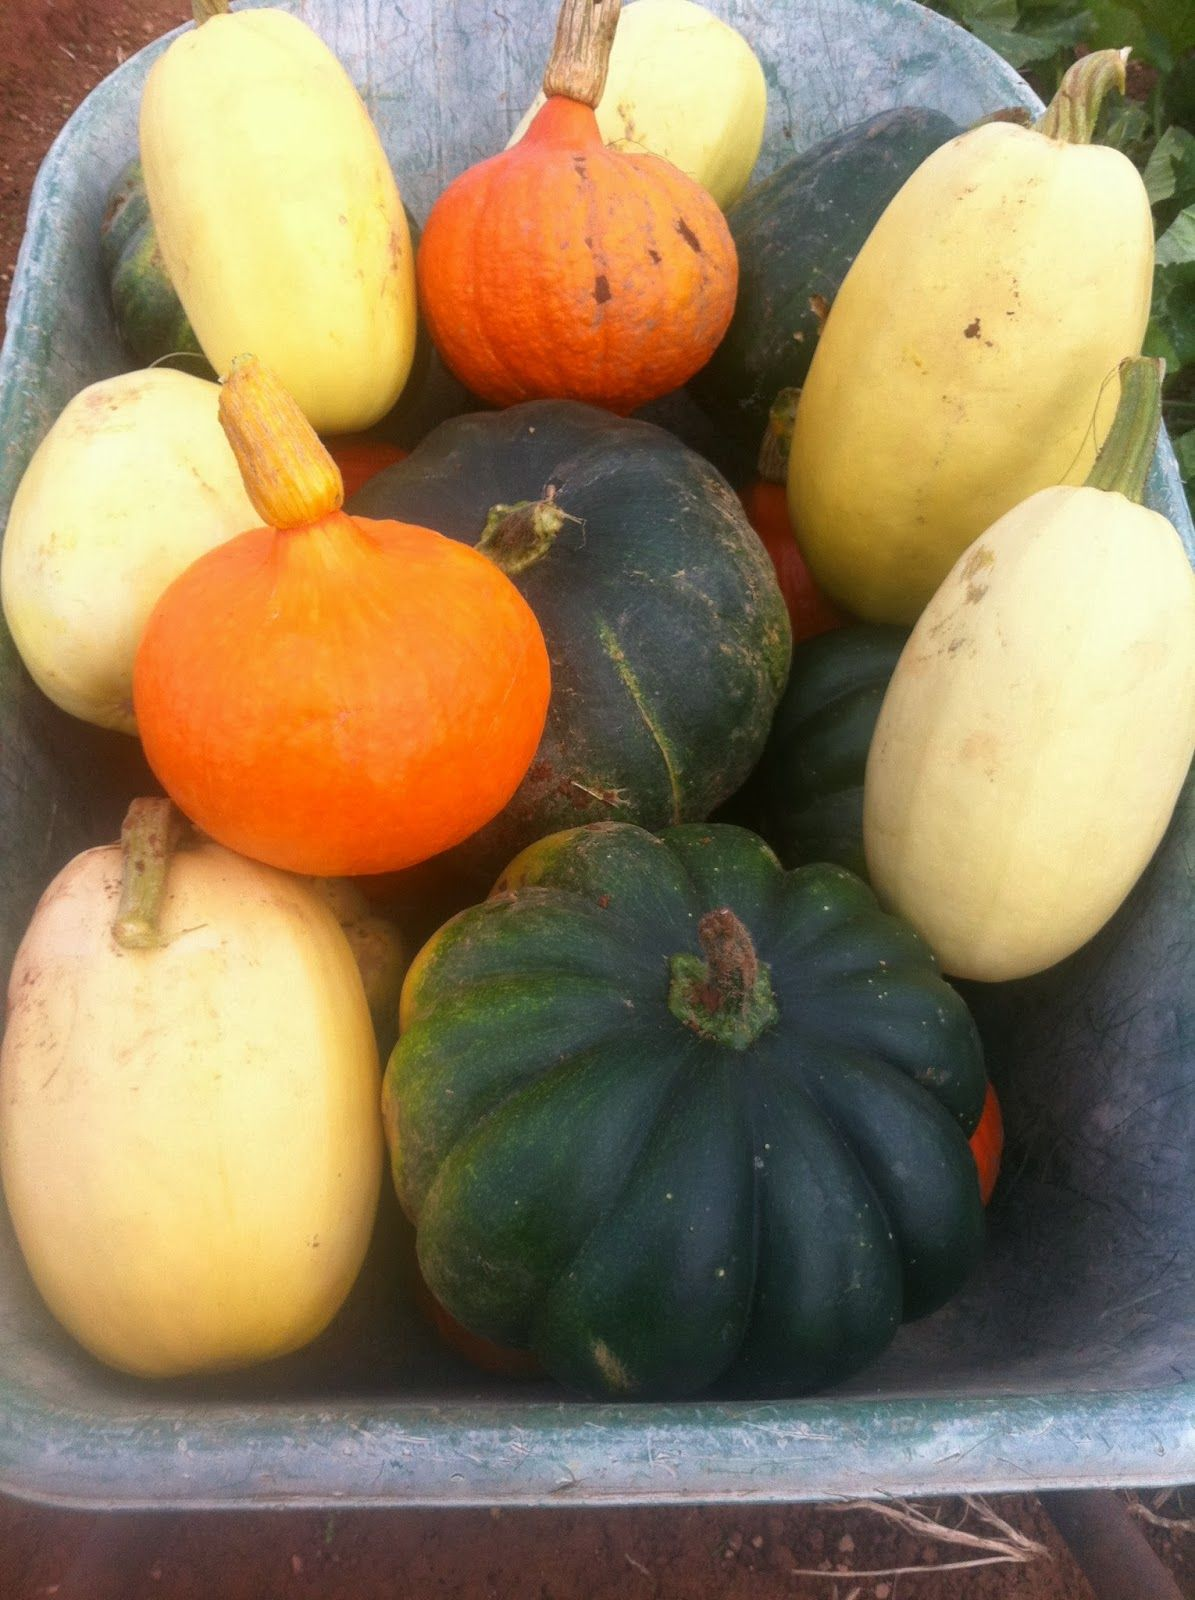 What to do with those squashes and gourds? Squashes